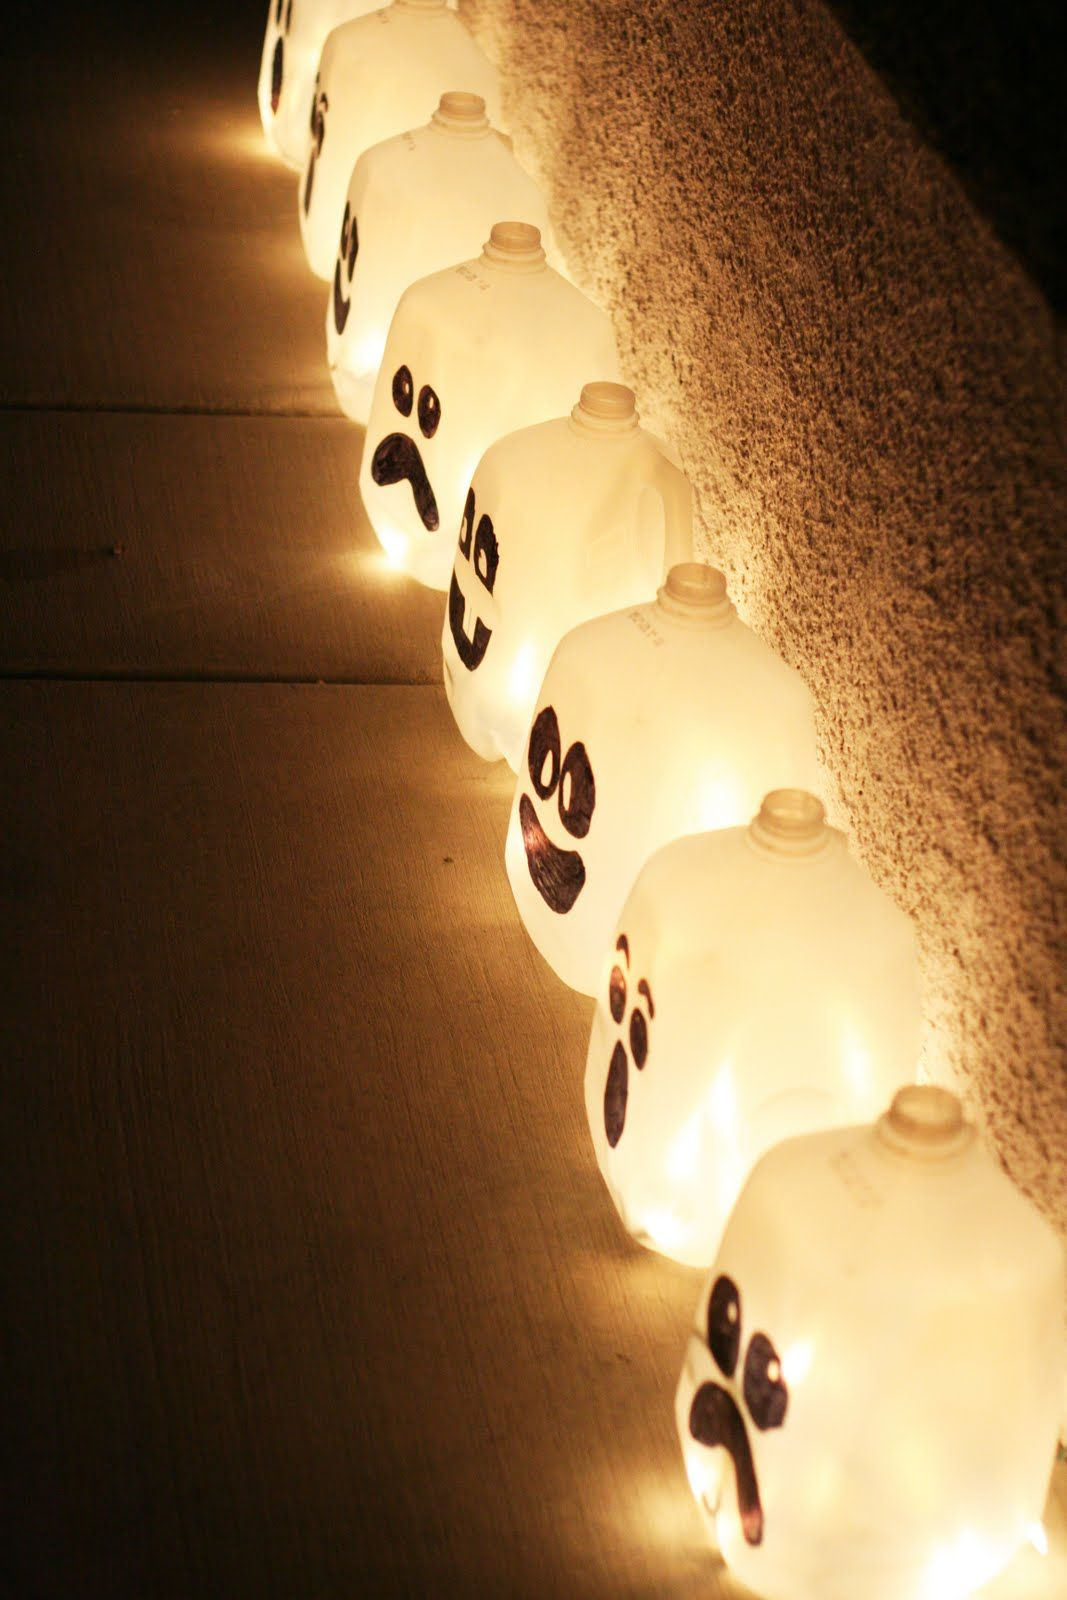 Halloween ghost lights scary halloween decorations Pinterest - Pinterest Halloween Decorations